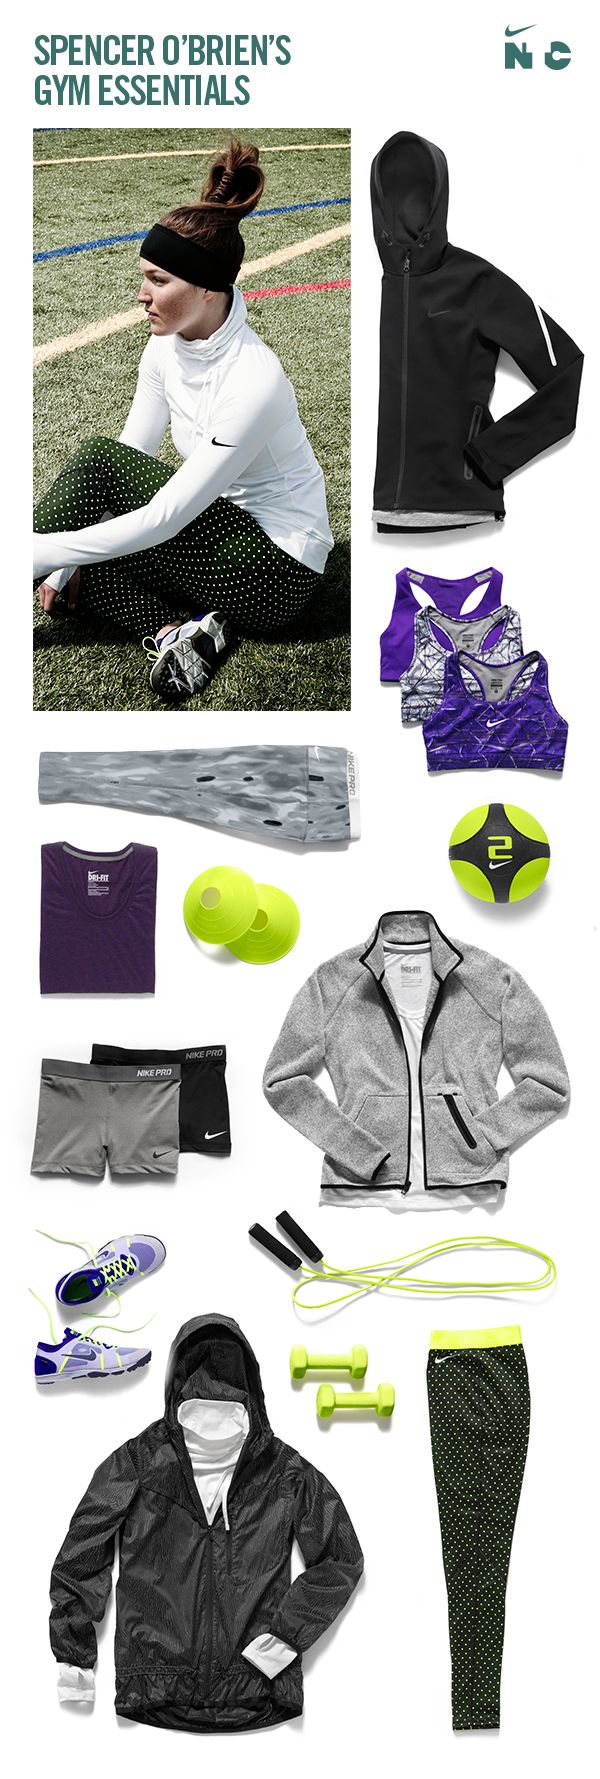 #Snowboarder Spencer O'Brien's #training favorites. #nike #train #teamnike